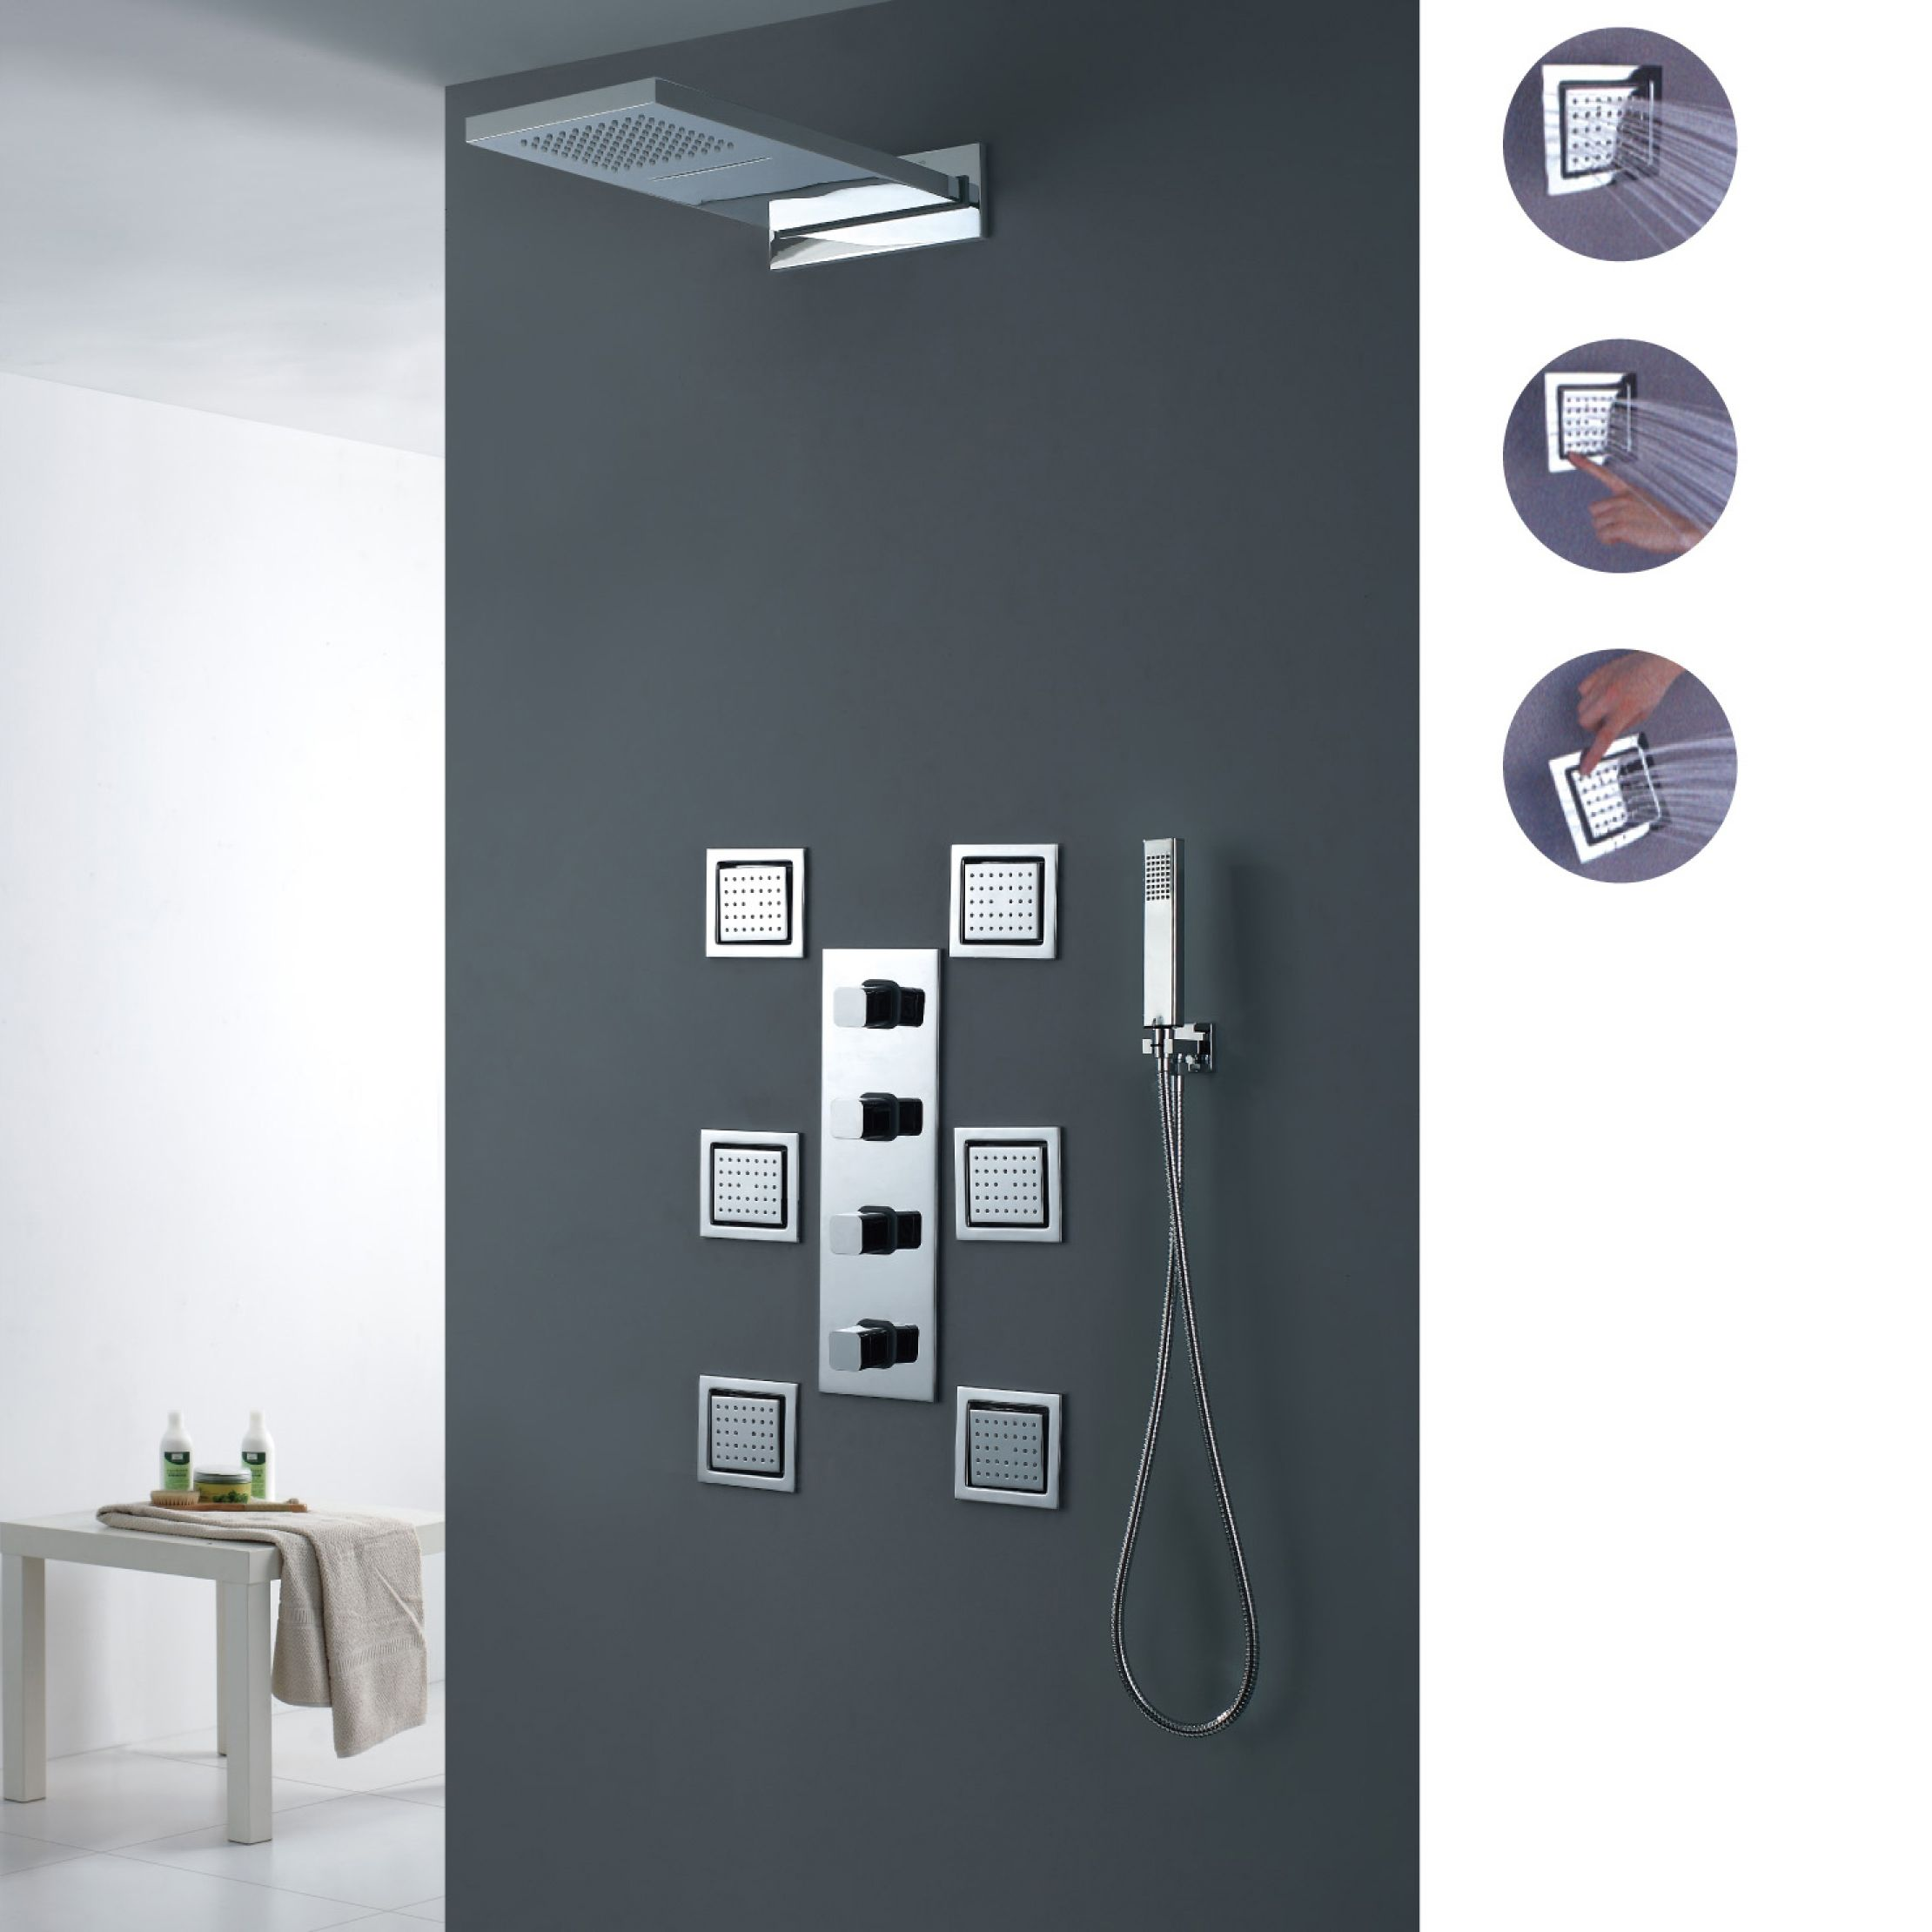 Luxury Wall Mount Waterfall Rain Shower System With 6 Body Sprays